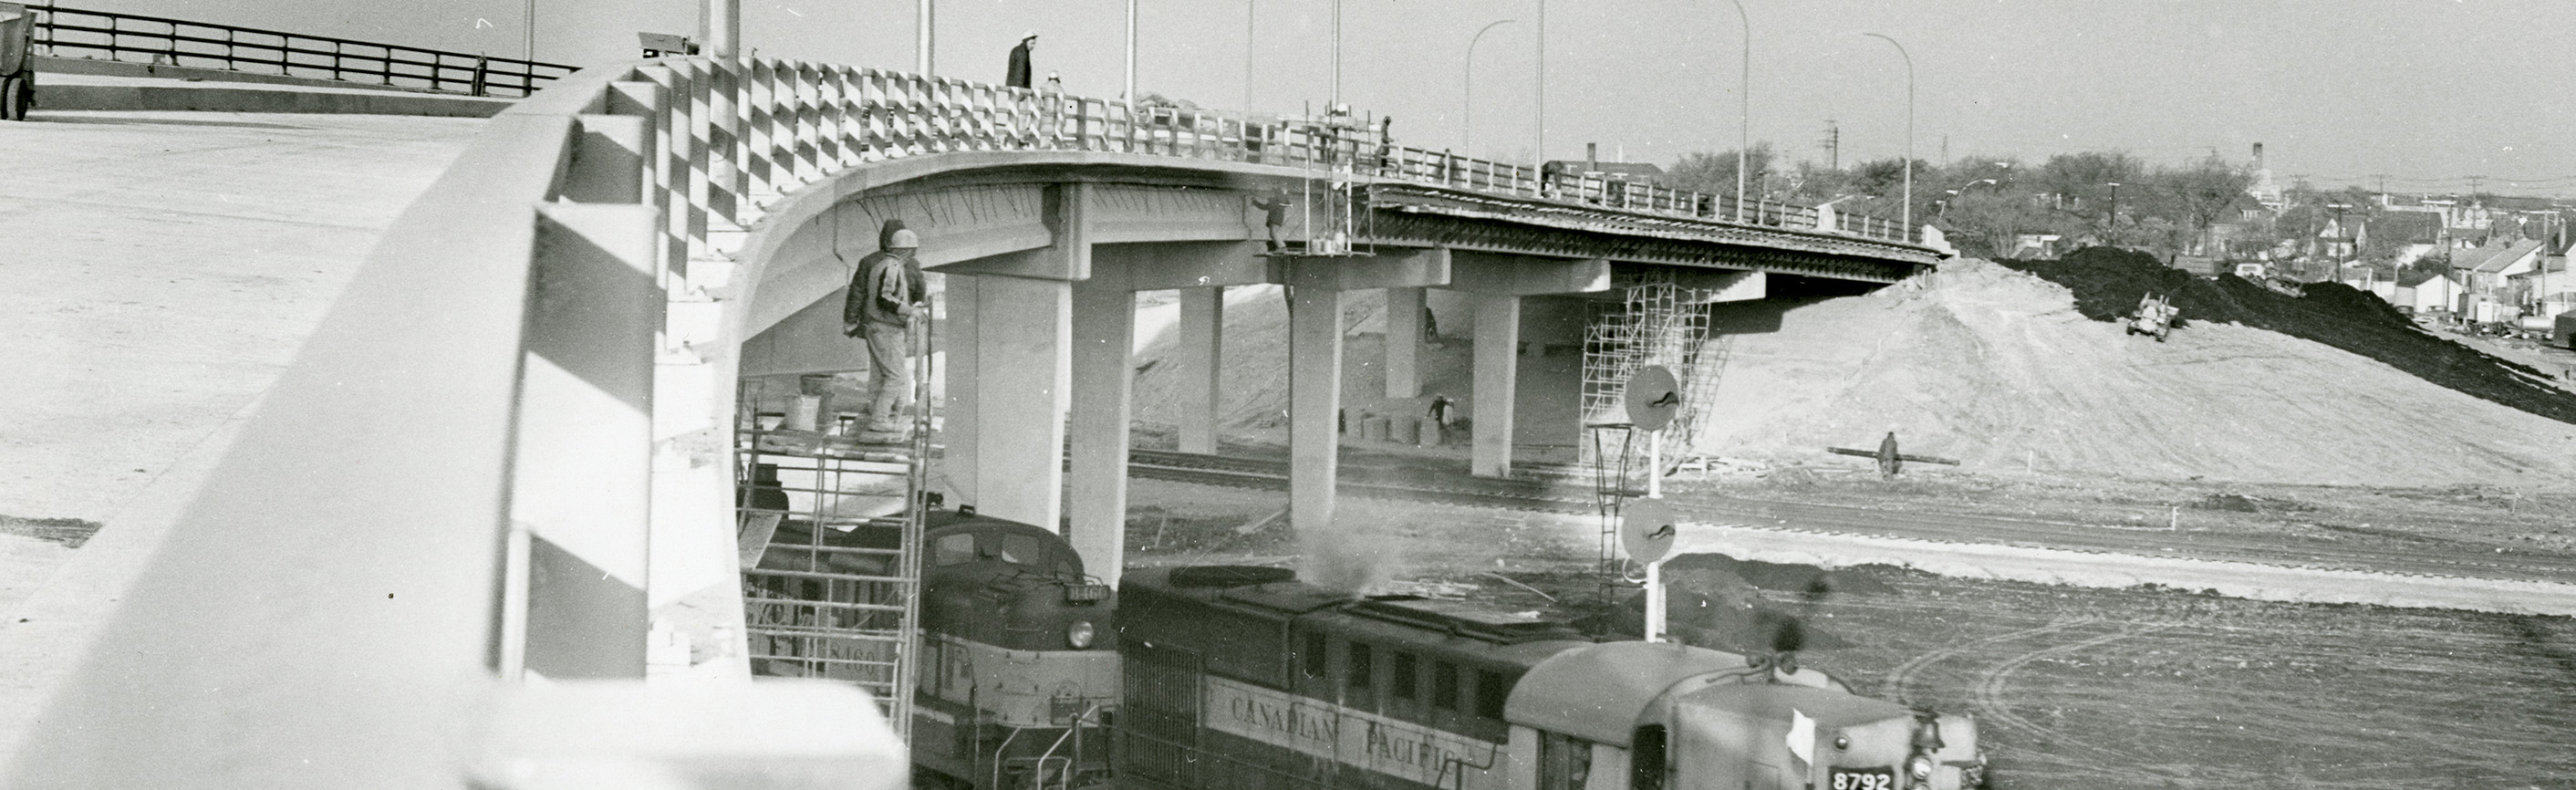 Nairn Overpass approaching completion, October 1967